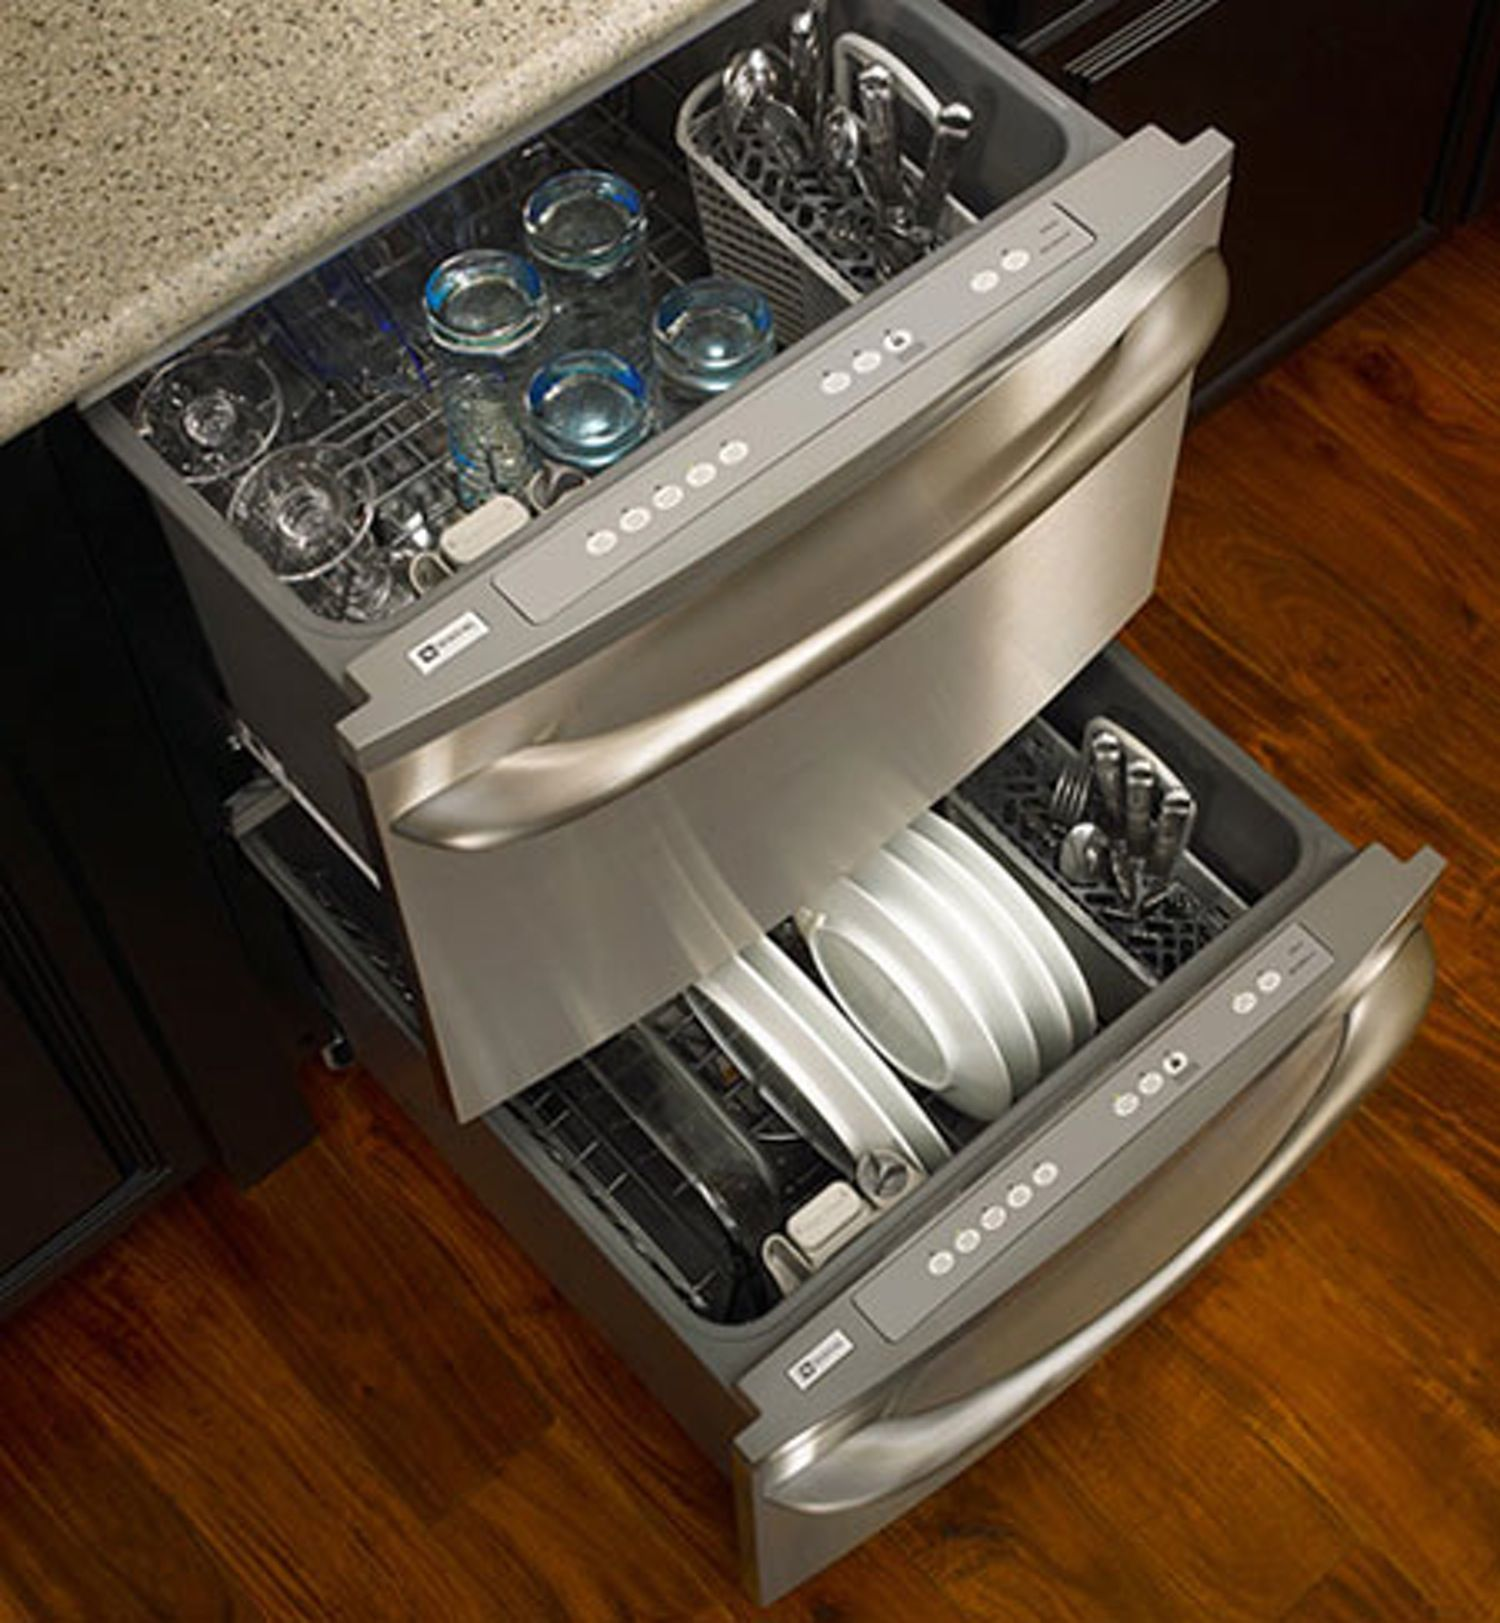 What Do You Think Of Dishwasher Drawers For The Home Drawer